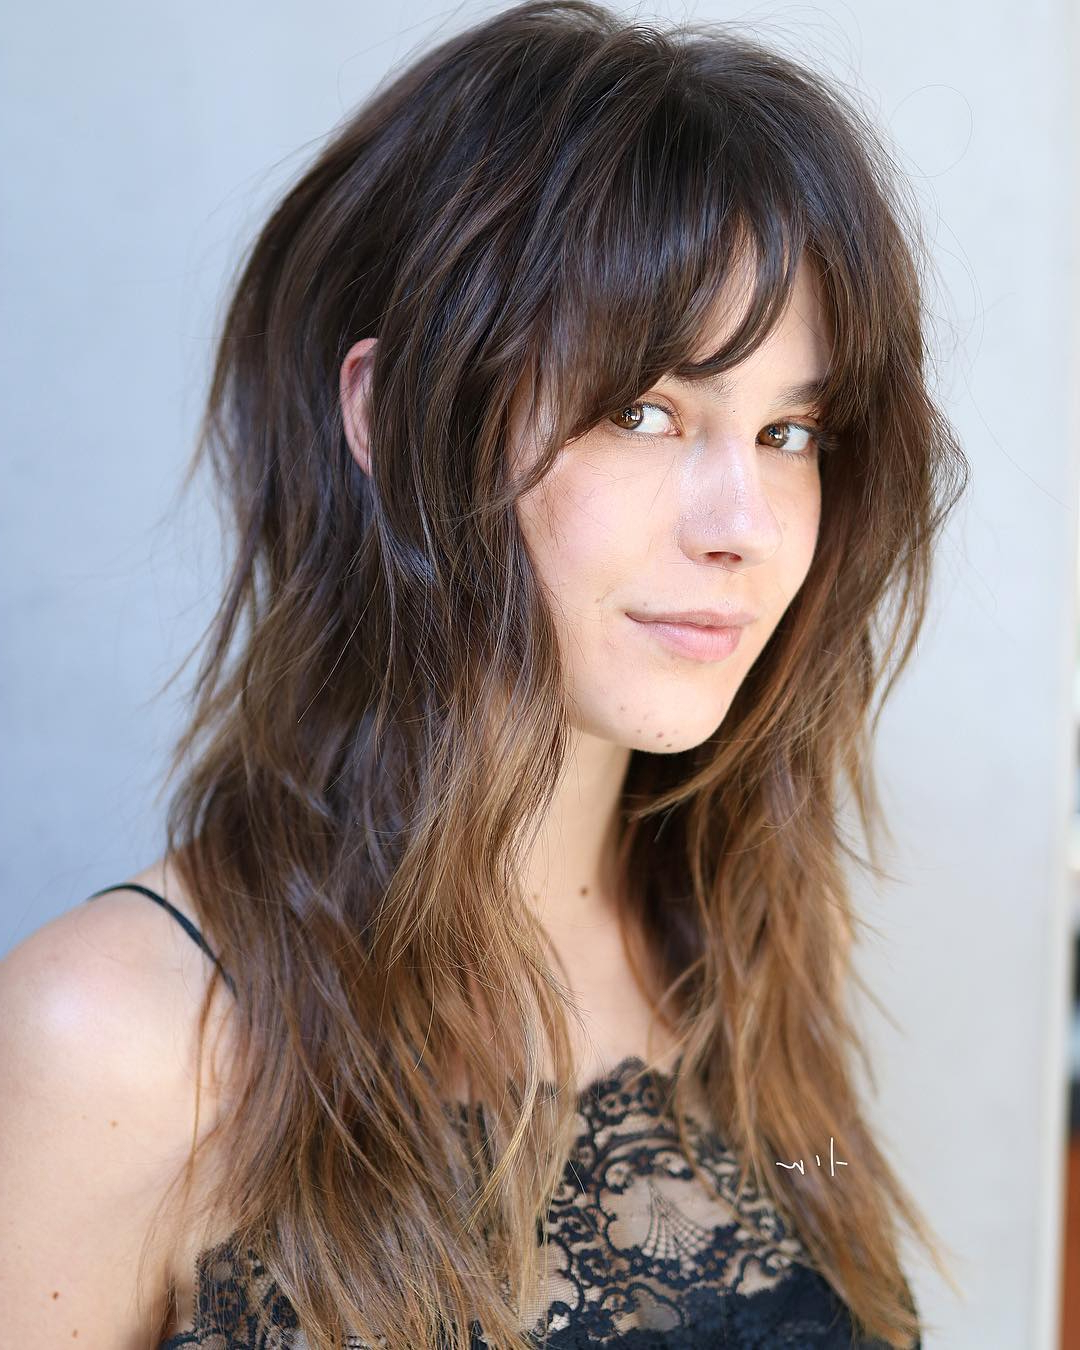 40 Modern Shag Haircuts For Women To Make A Splash With Long Razored Shag Haircuts With Balayage (View 8 of 20)